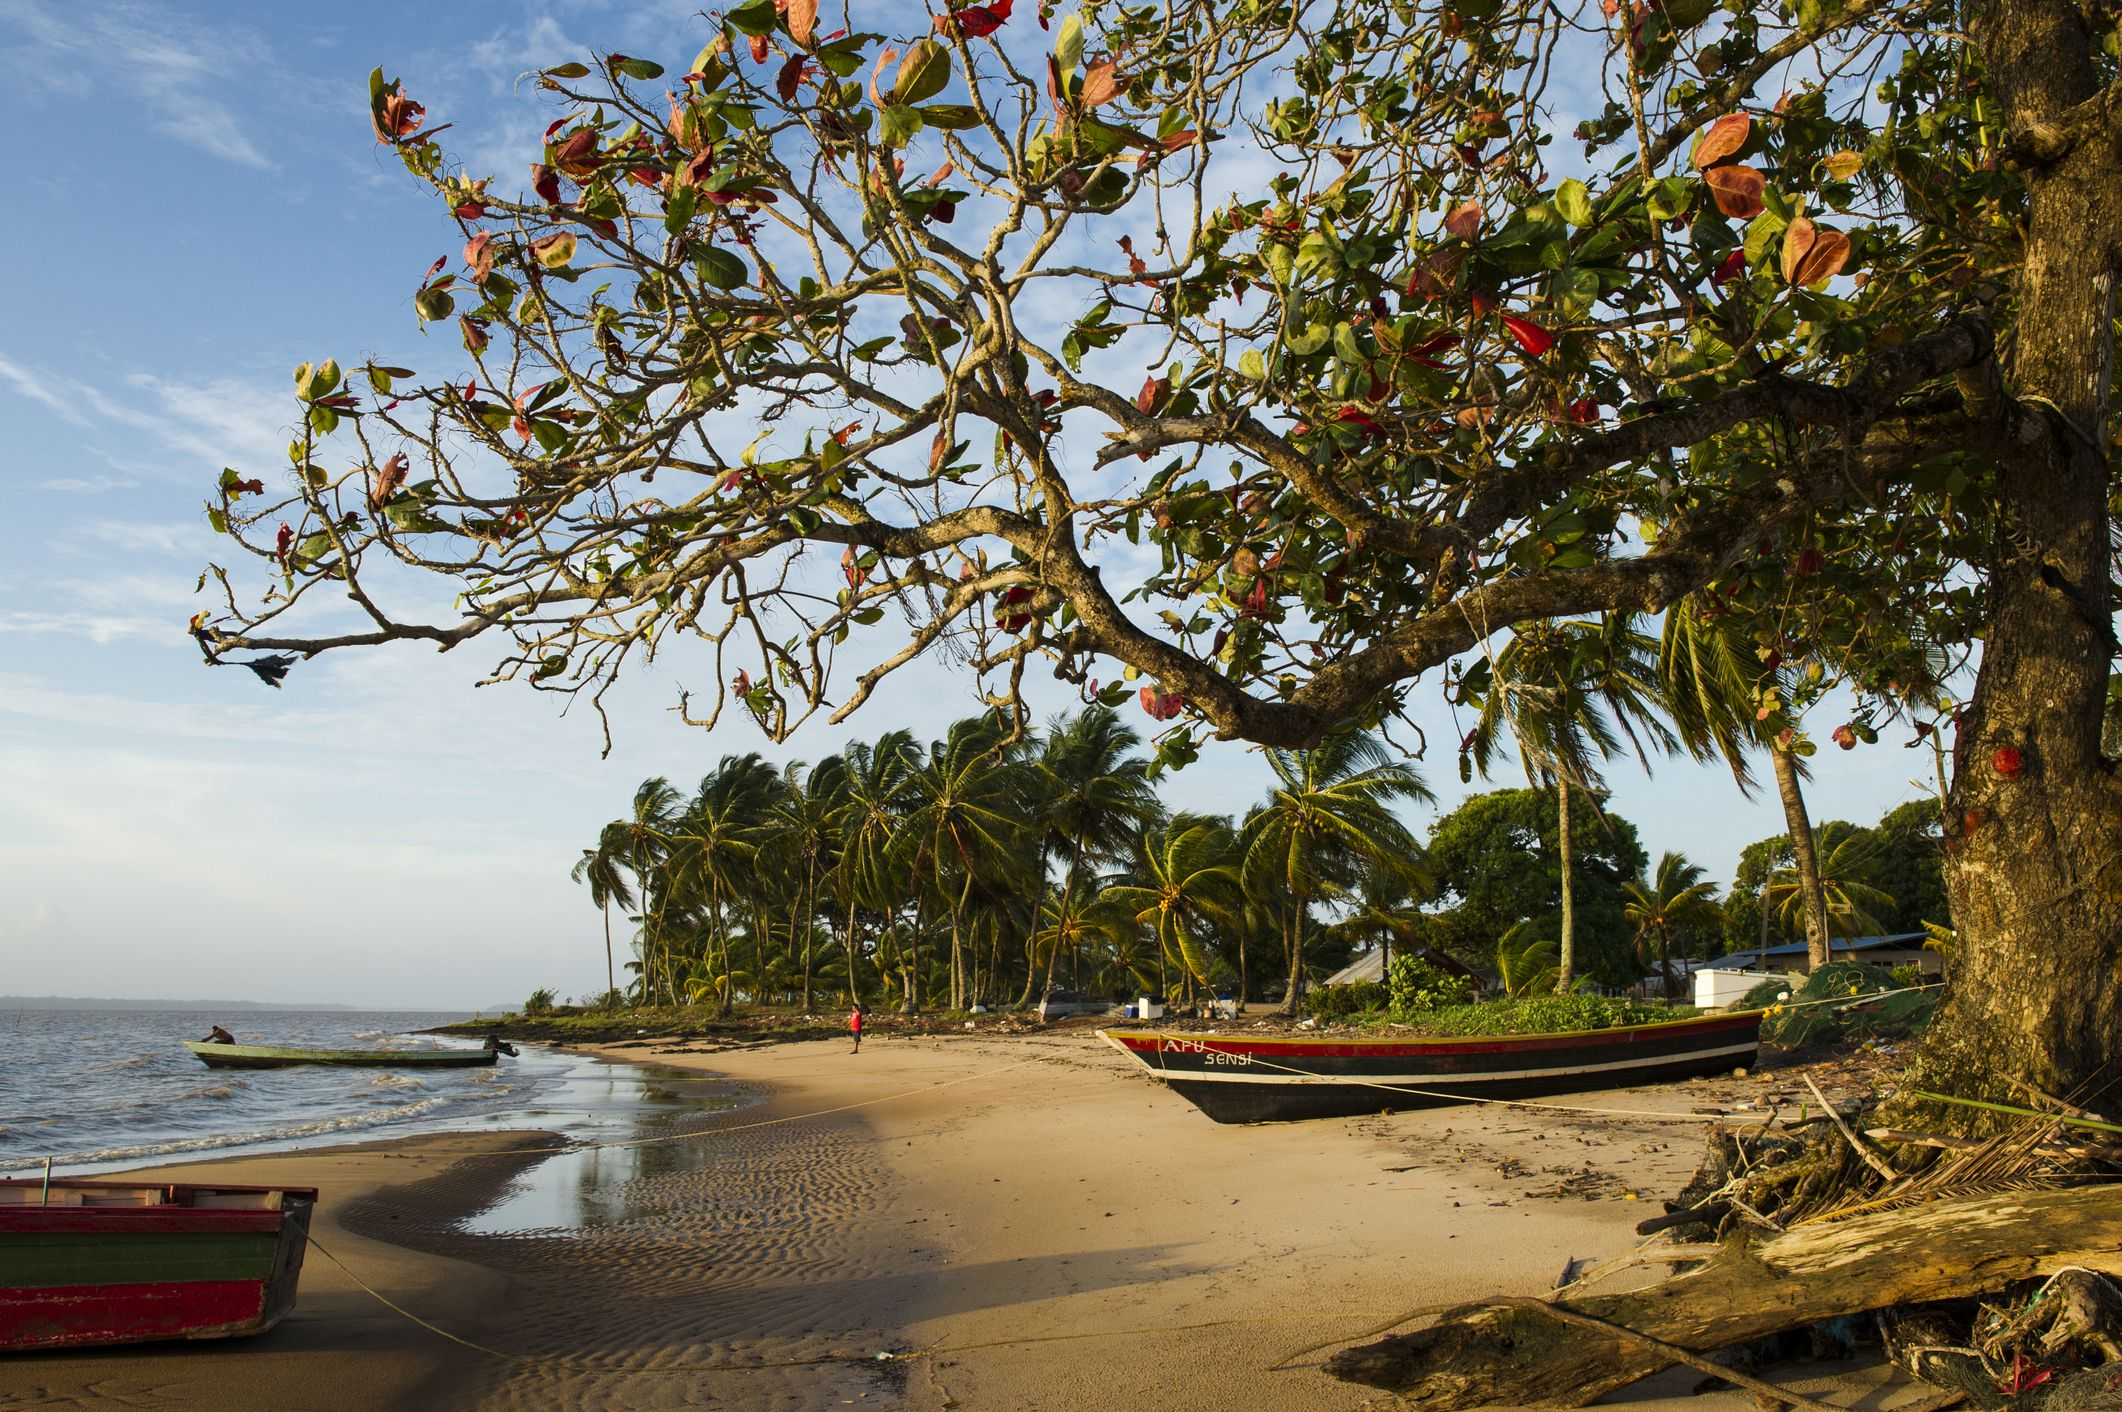 Boats next to a tree on the beach in Galibi, Suriname